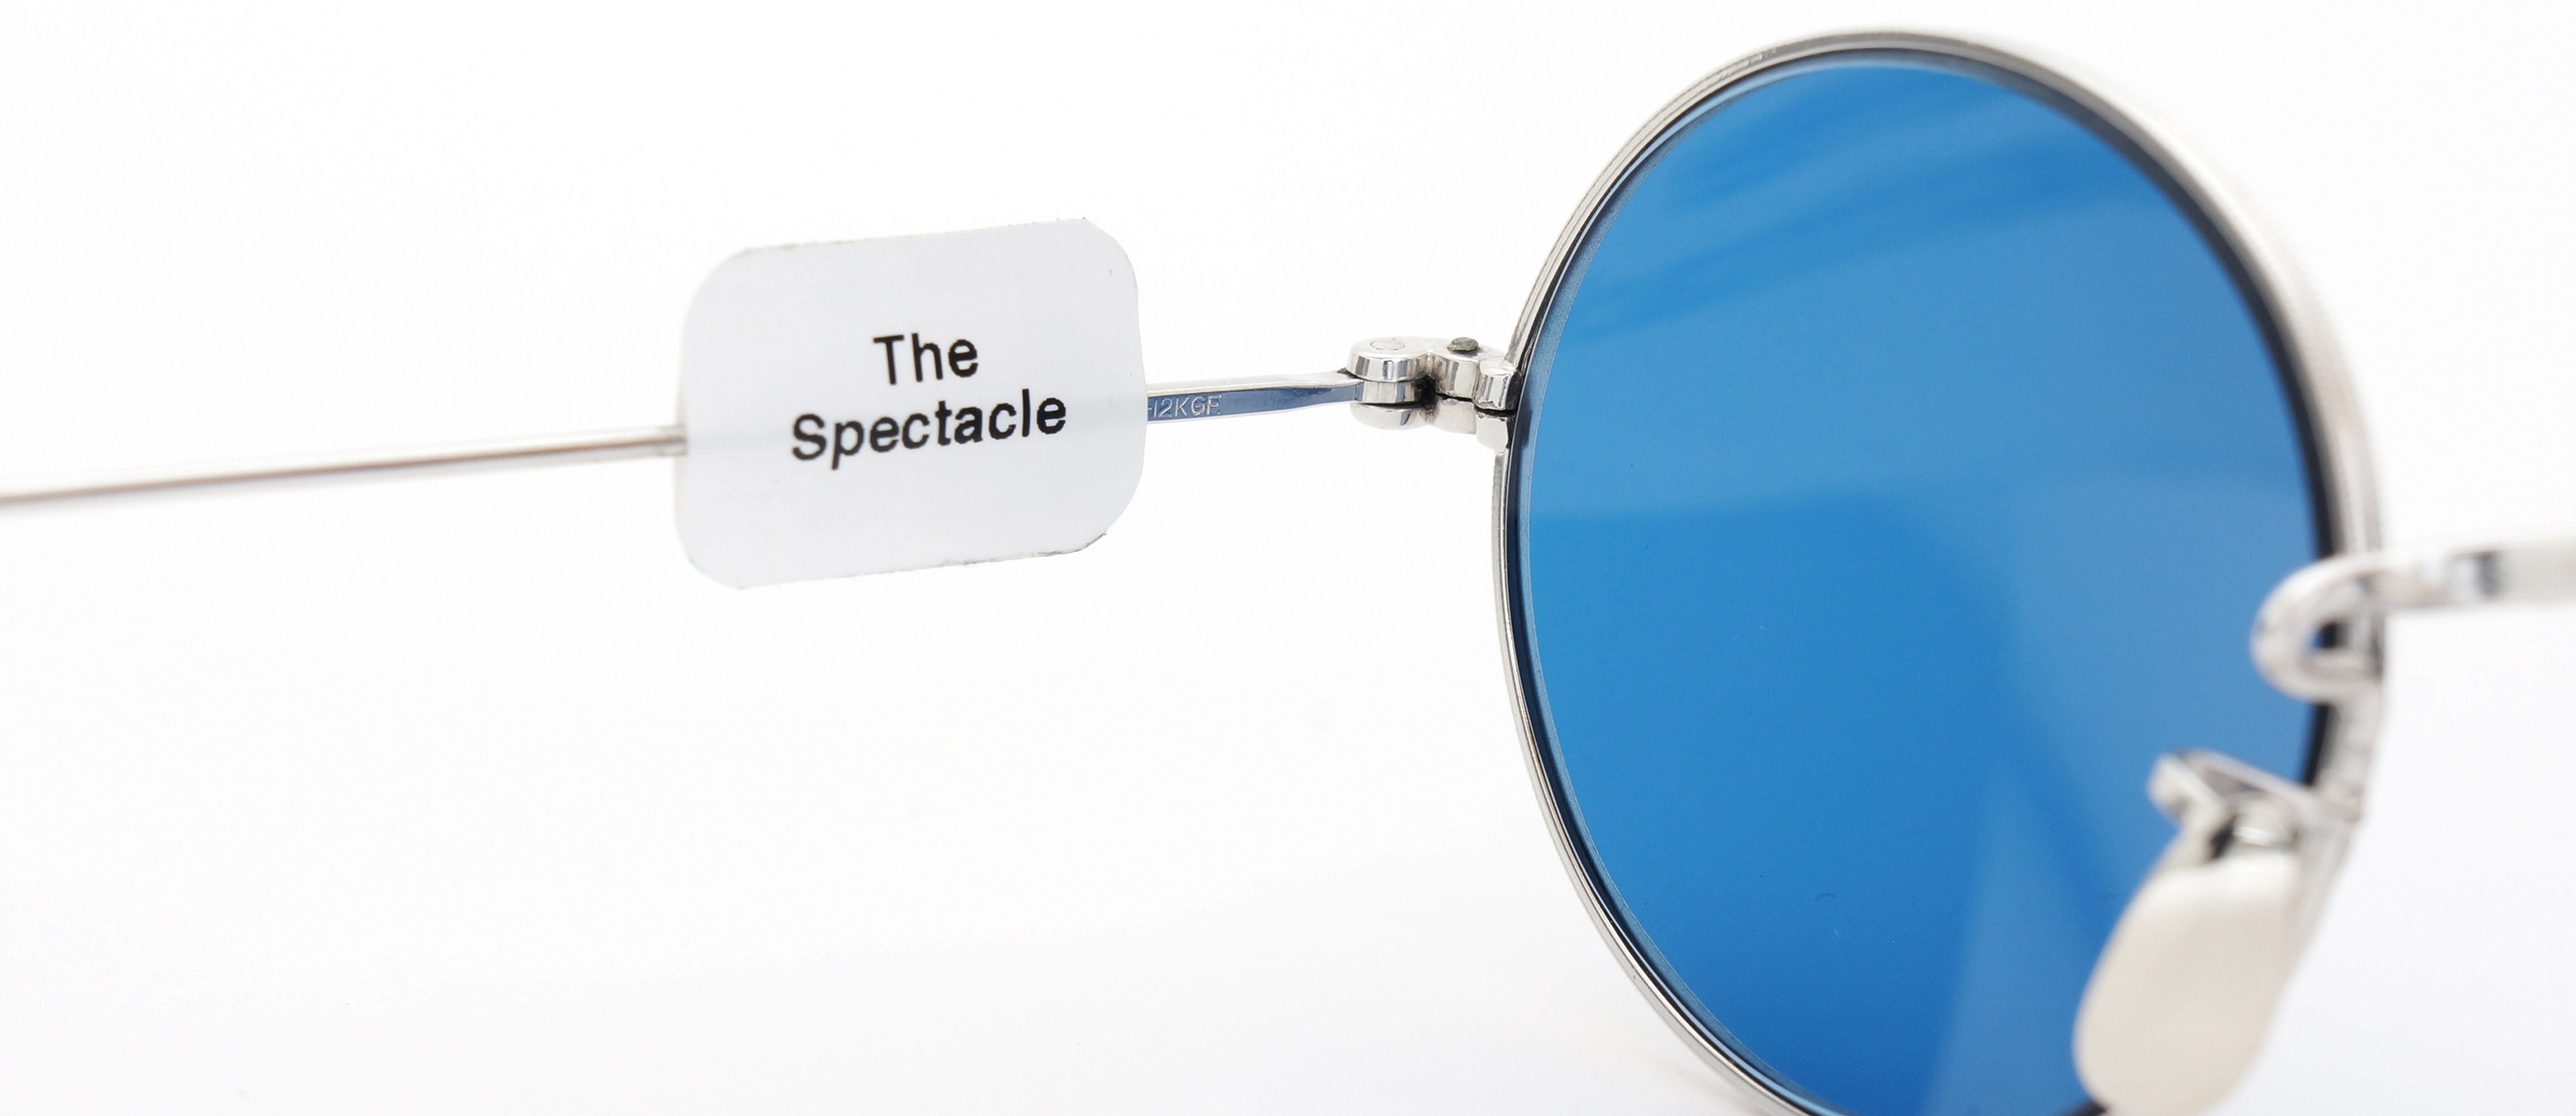 The Spectacle メガネ 1928-30s American Optical Full-Frame Side-Mount Alexander WG 12kPads 44/21 Blue-Lense イメージ11